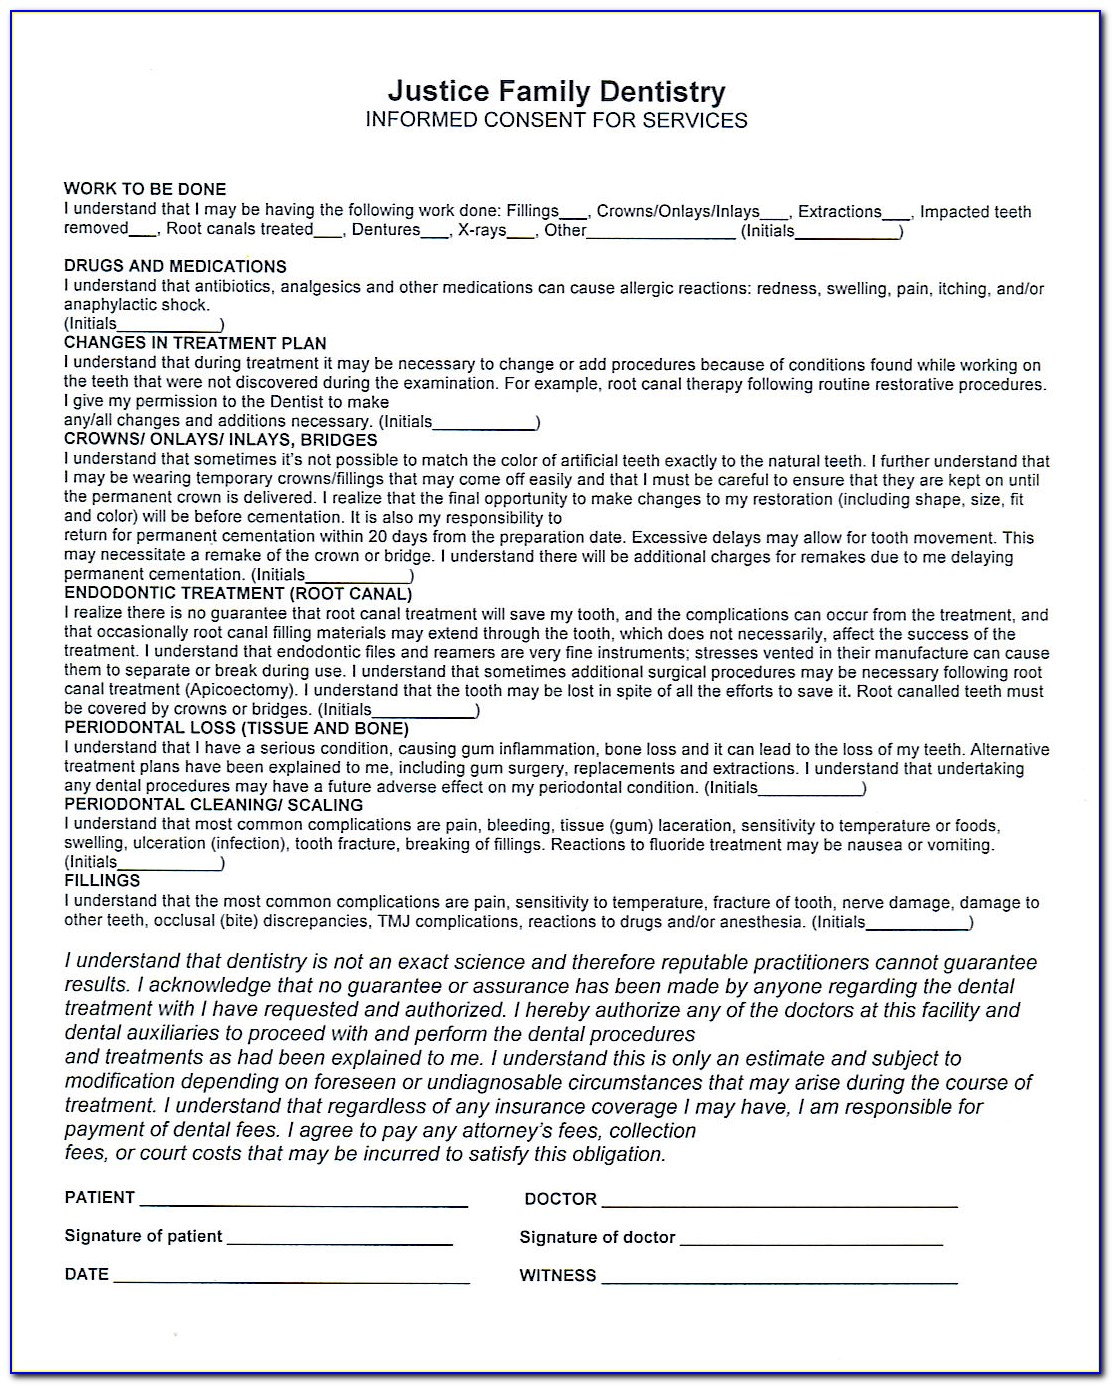 Mobile Teeth Whitening Consent Form